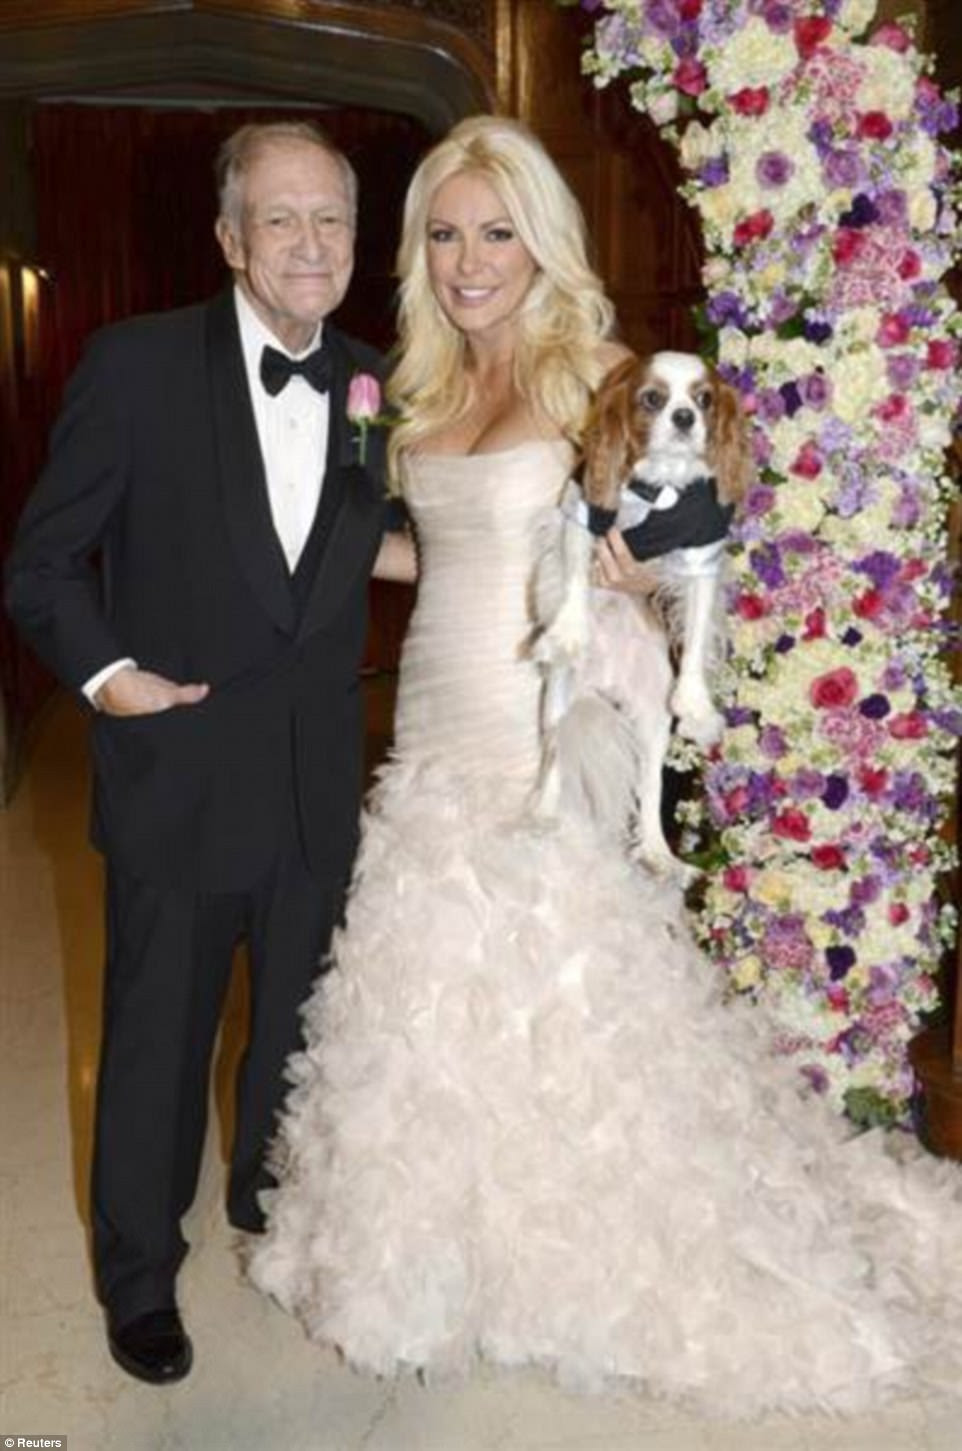 The couple, who shared a 60 year age gap, tied the knot on New Year's Eve in 2012 at the Playboy Mansion in Los Angeles